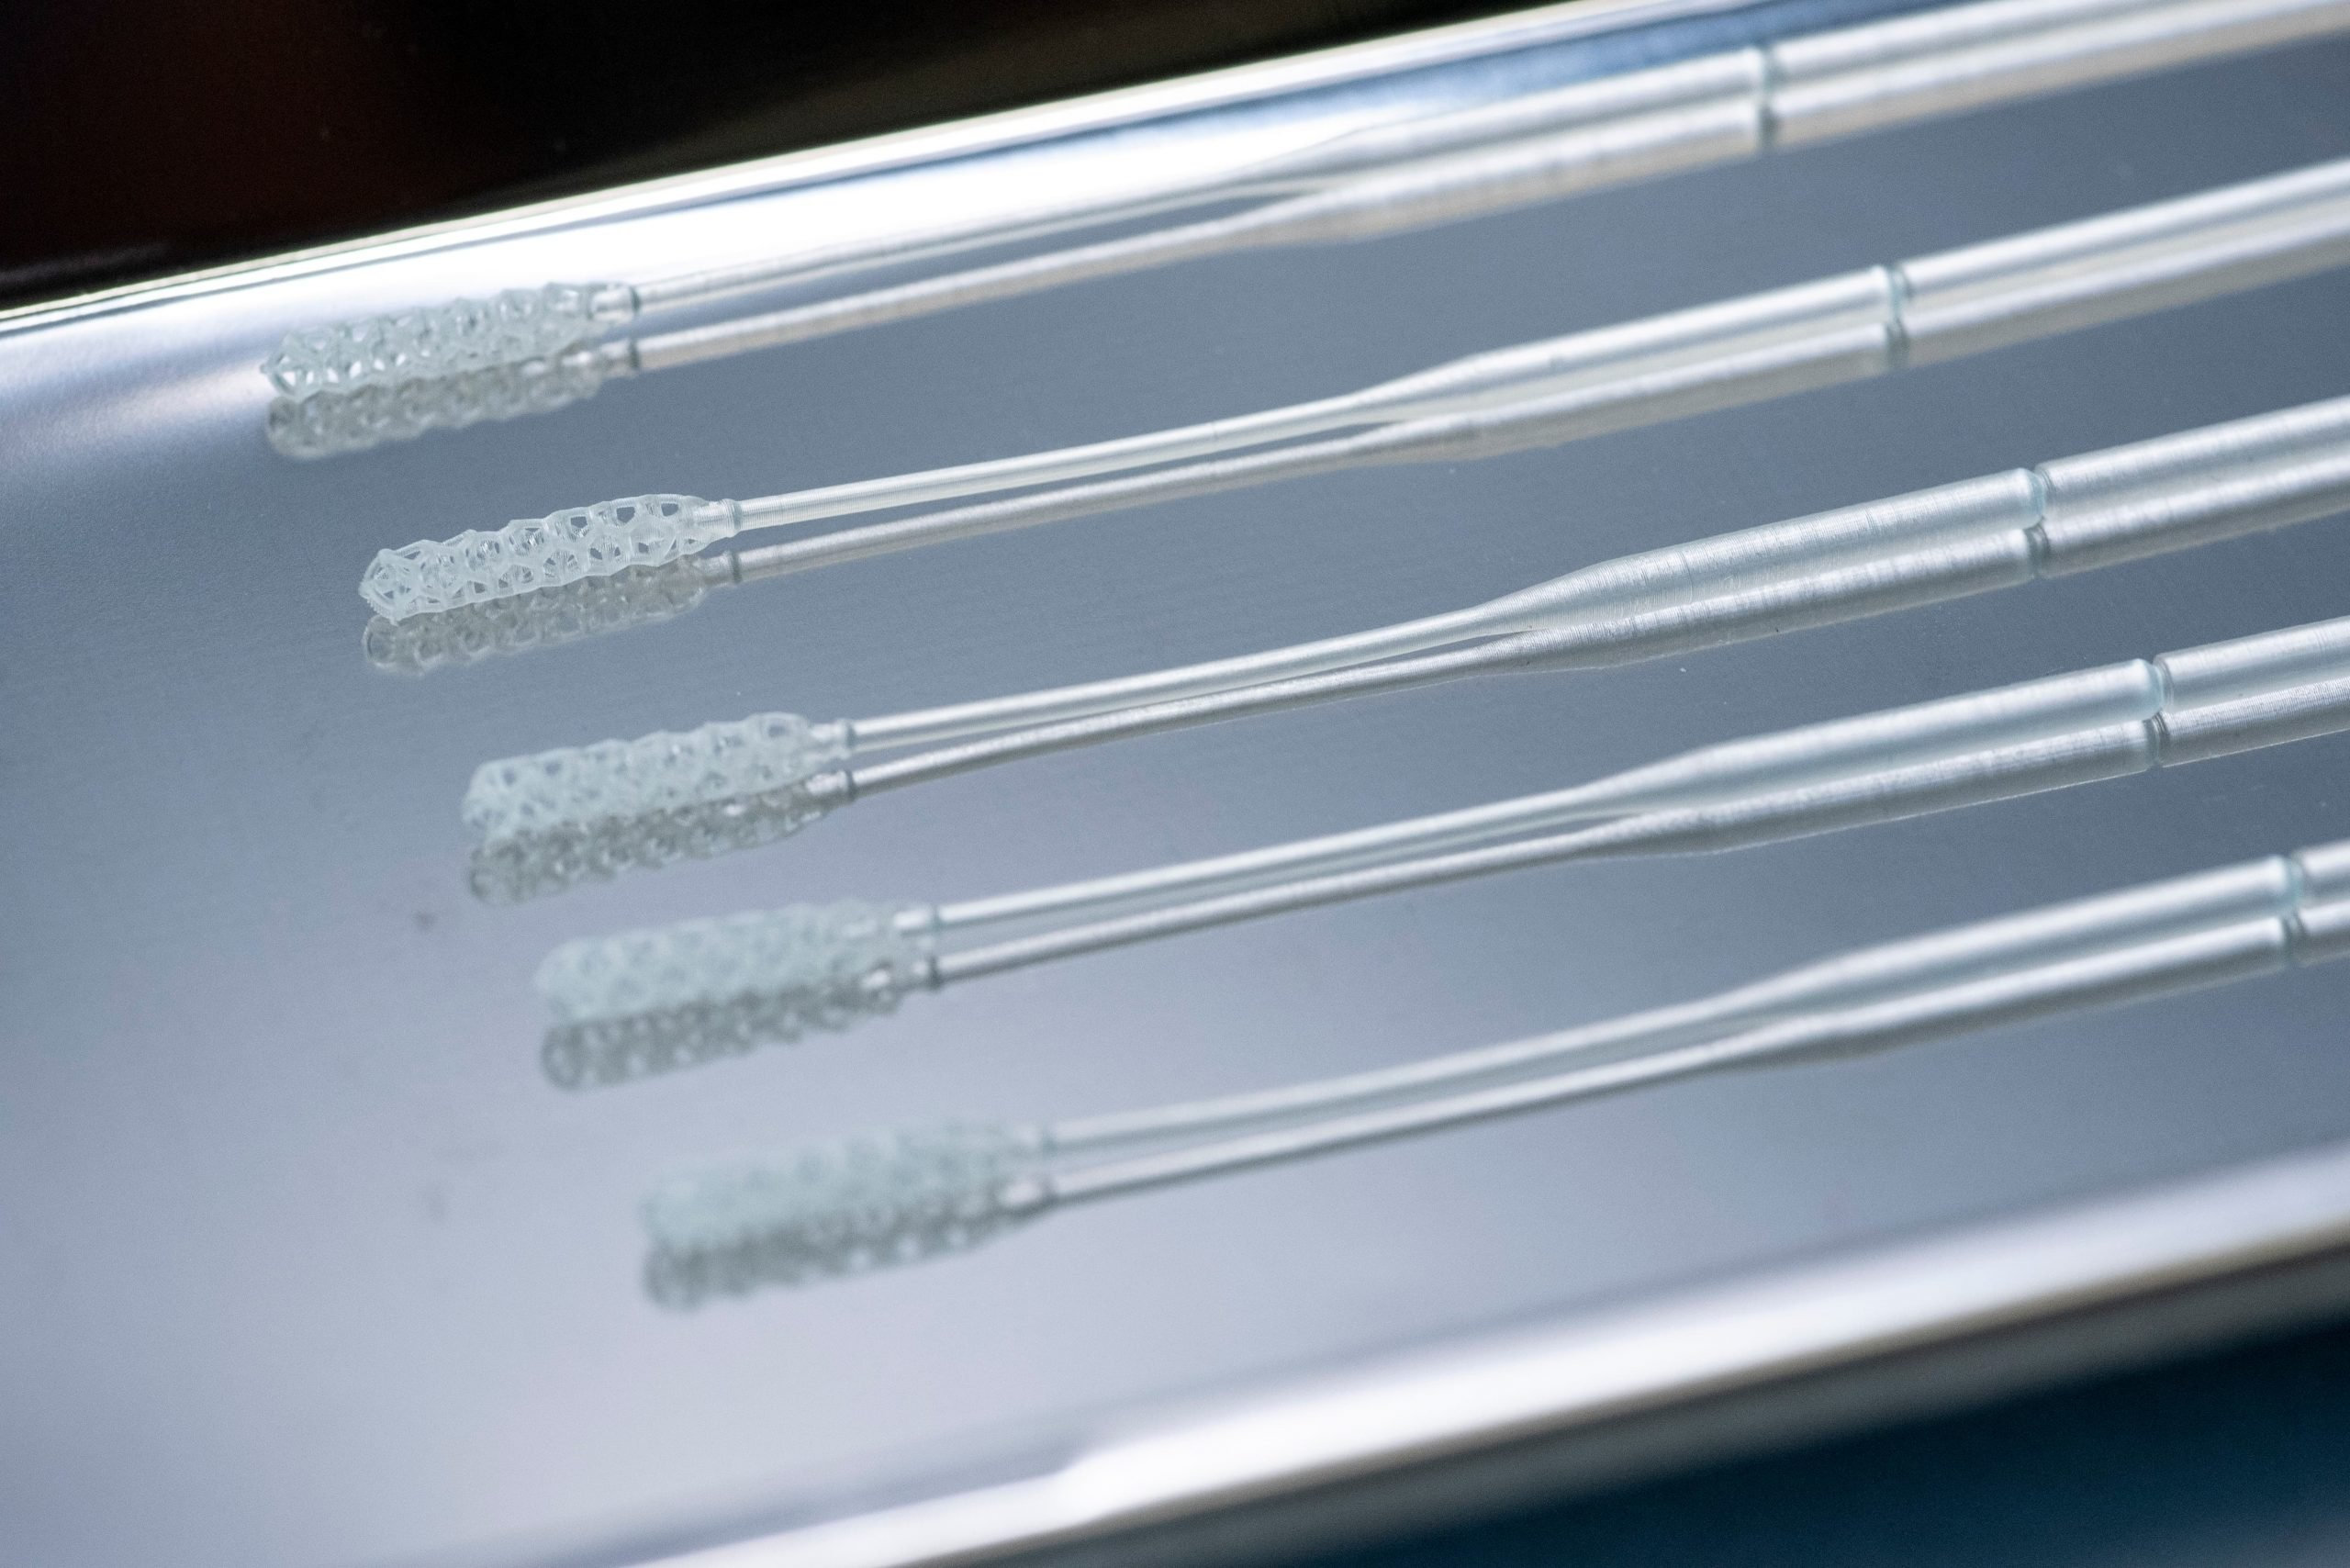 Origin 3D printed swabs